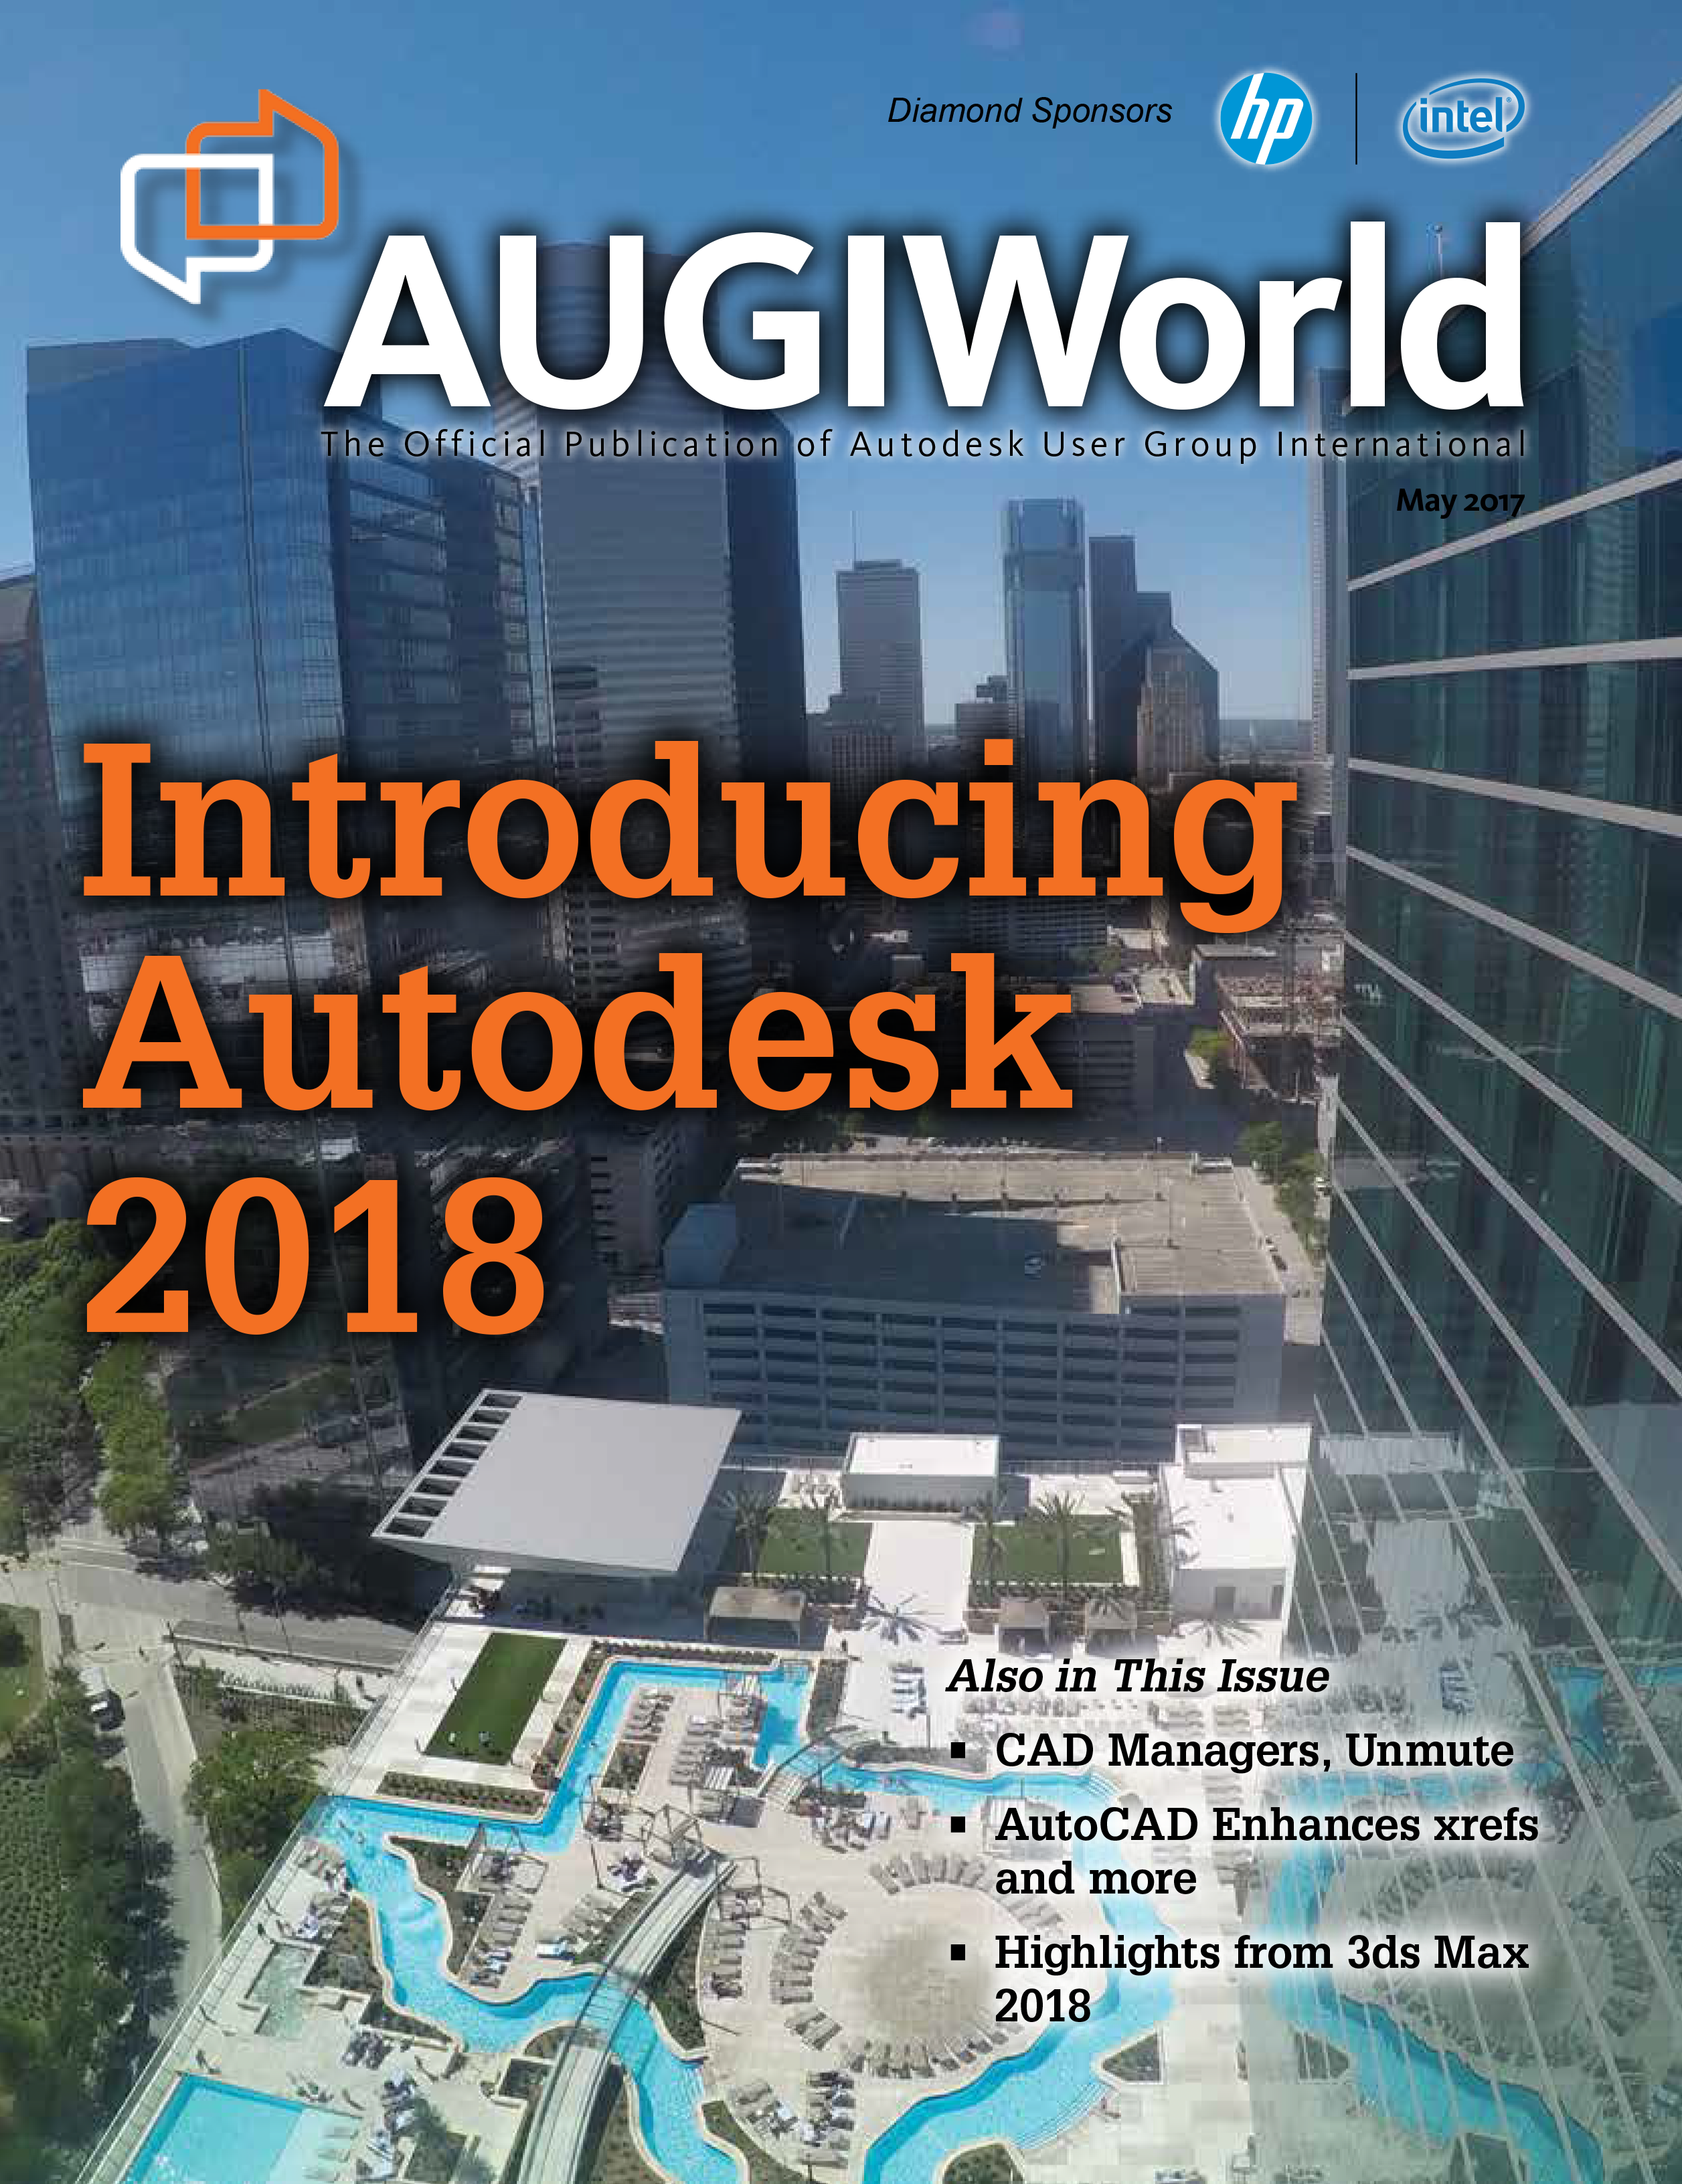 AUGIWorld May 2017